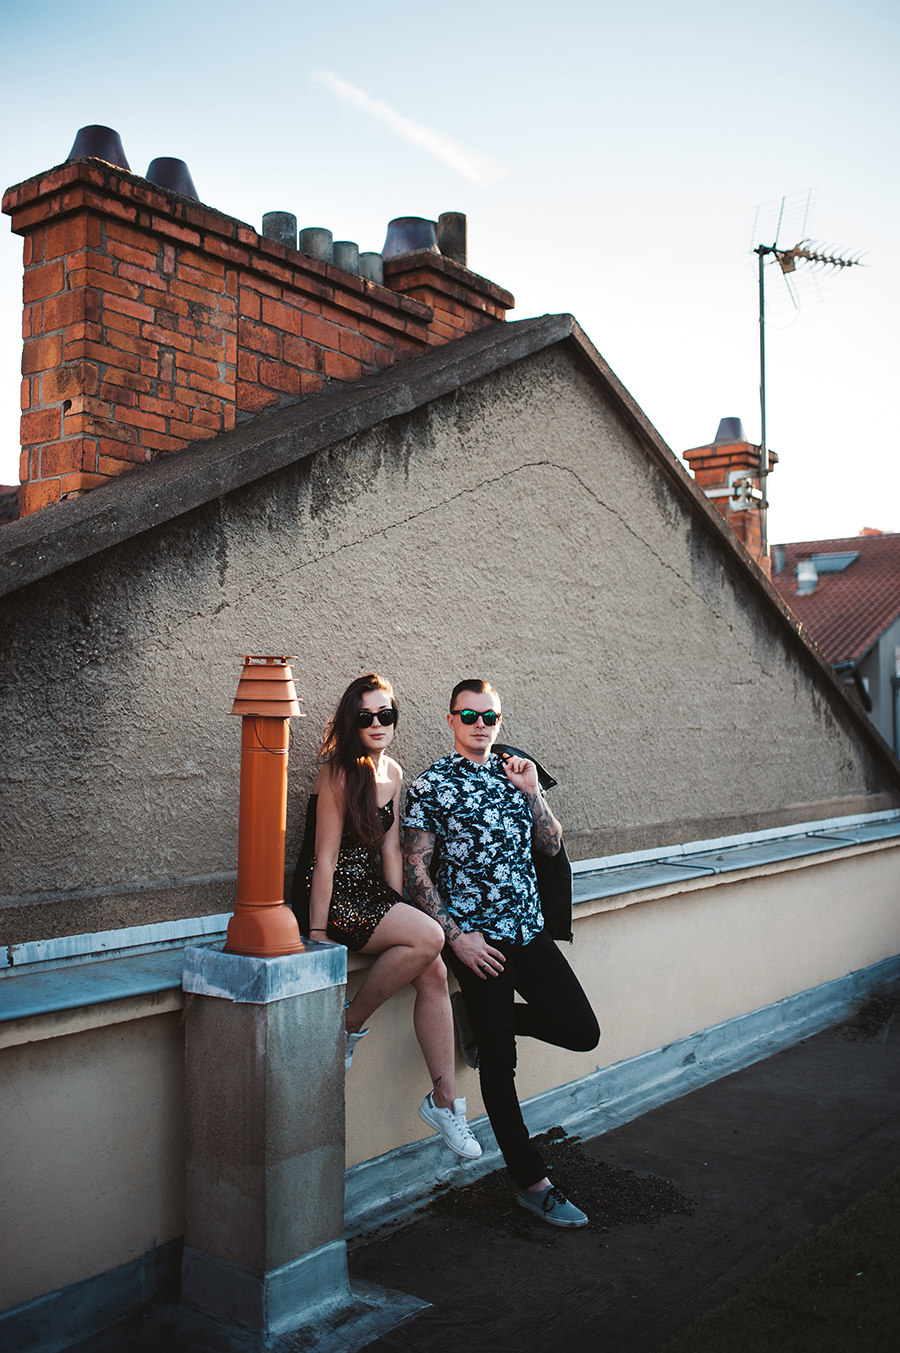 melanie-bultez-photographe-mariage-alternatif-rock-rooftop-wedding-couple-lyon-1